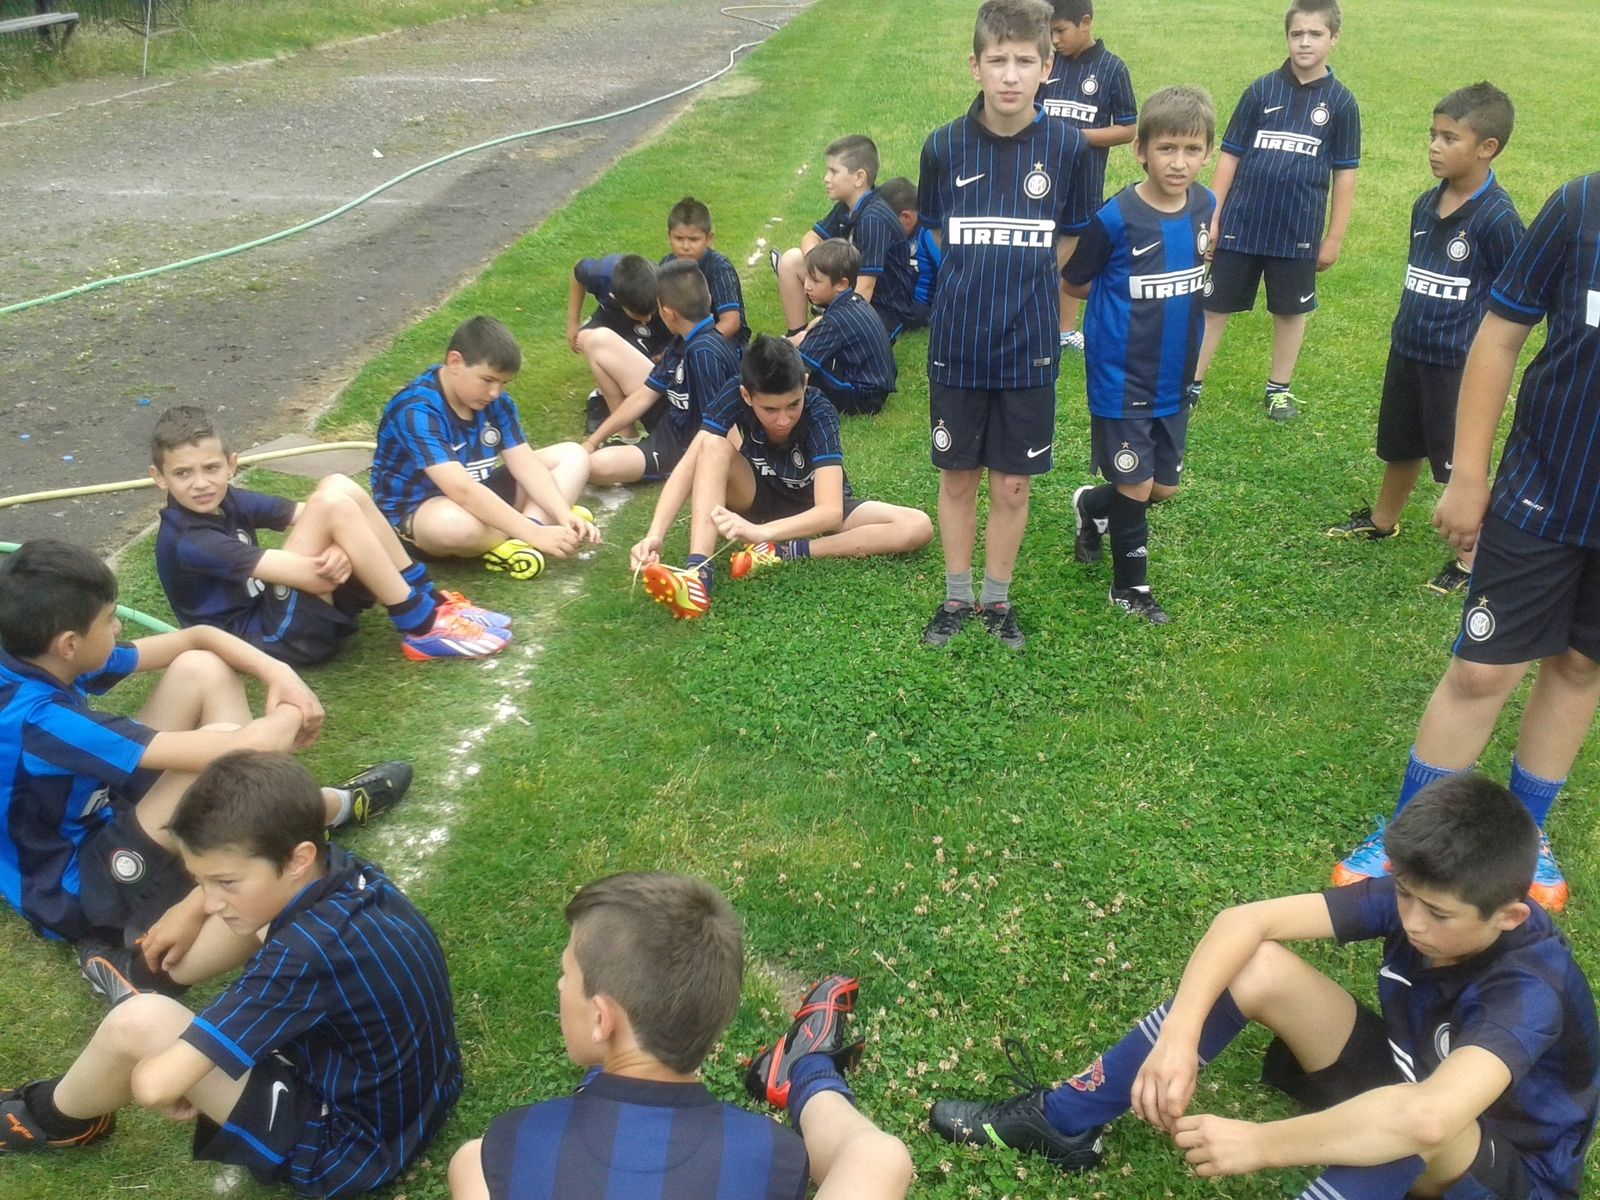 Party atmosphere at Inter Campus Bulgaria